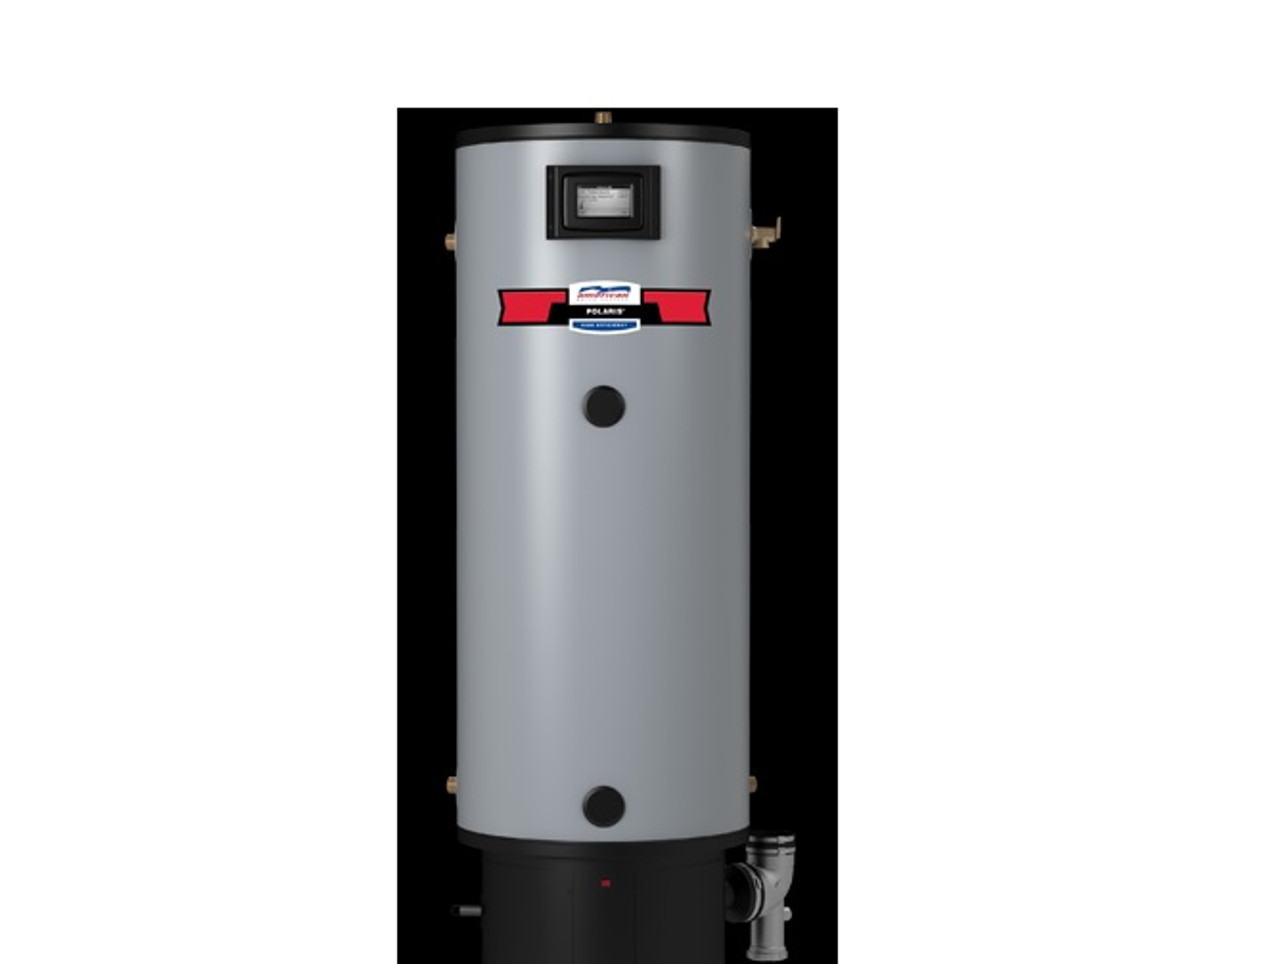 Polaris Pg10 50 130 2nv Water Heater 50 Gallon Residential Gas 130 000 Btu Commercial Water Heater Sales Eplumbing Products Inc